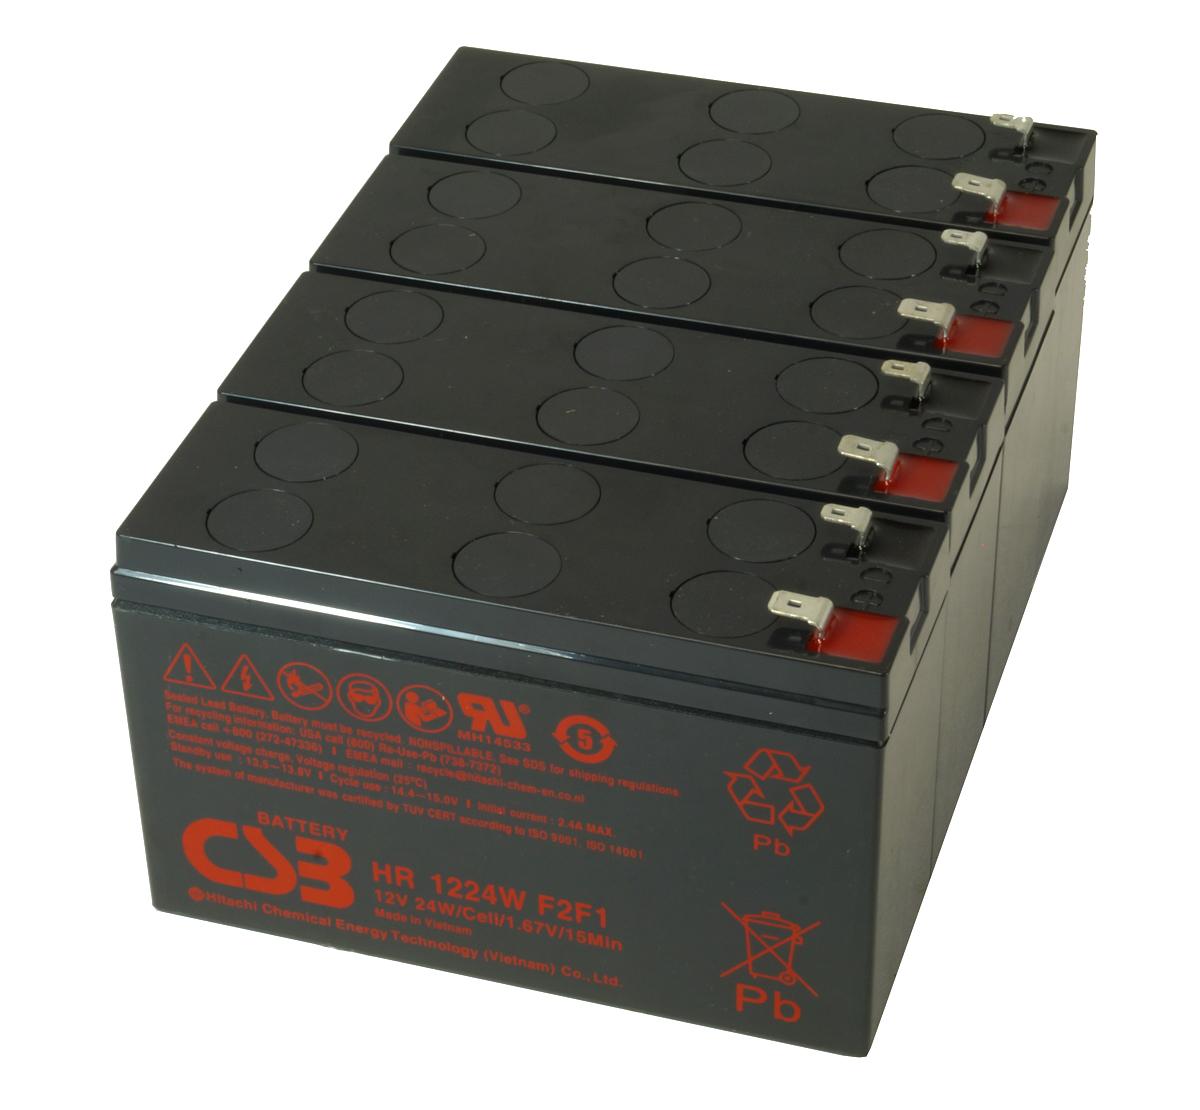 MDS1015 UPS Battery Kit for MGE AB1015